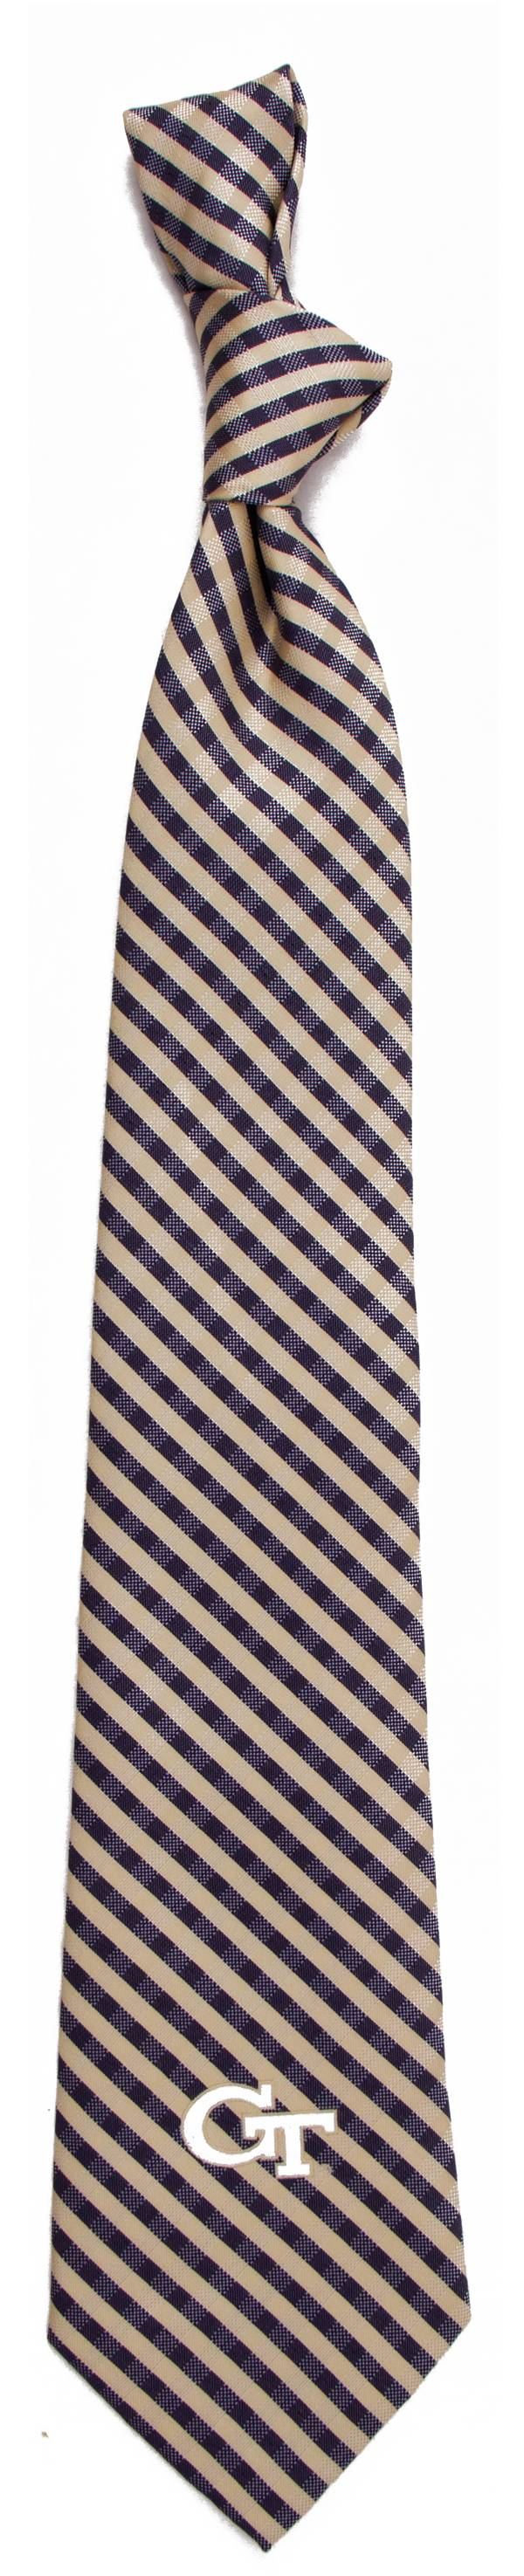 Eagles Wings Georgia Tech Yellow Jackets Gingham Necktie product image